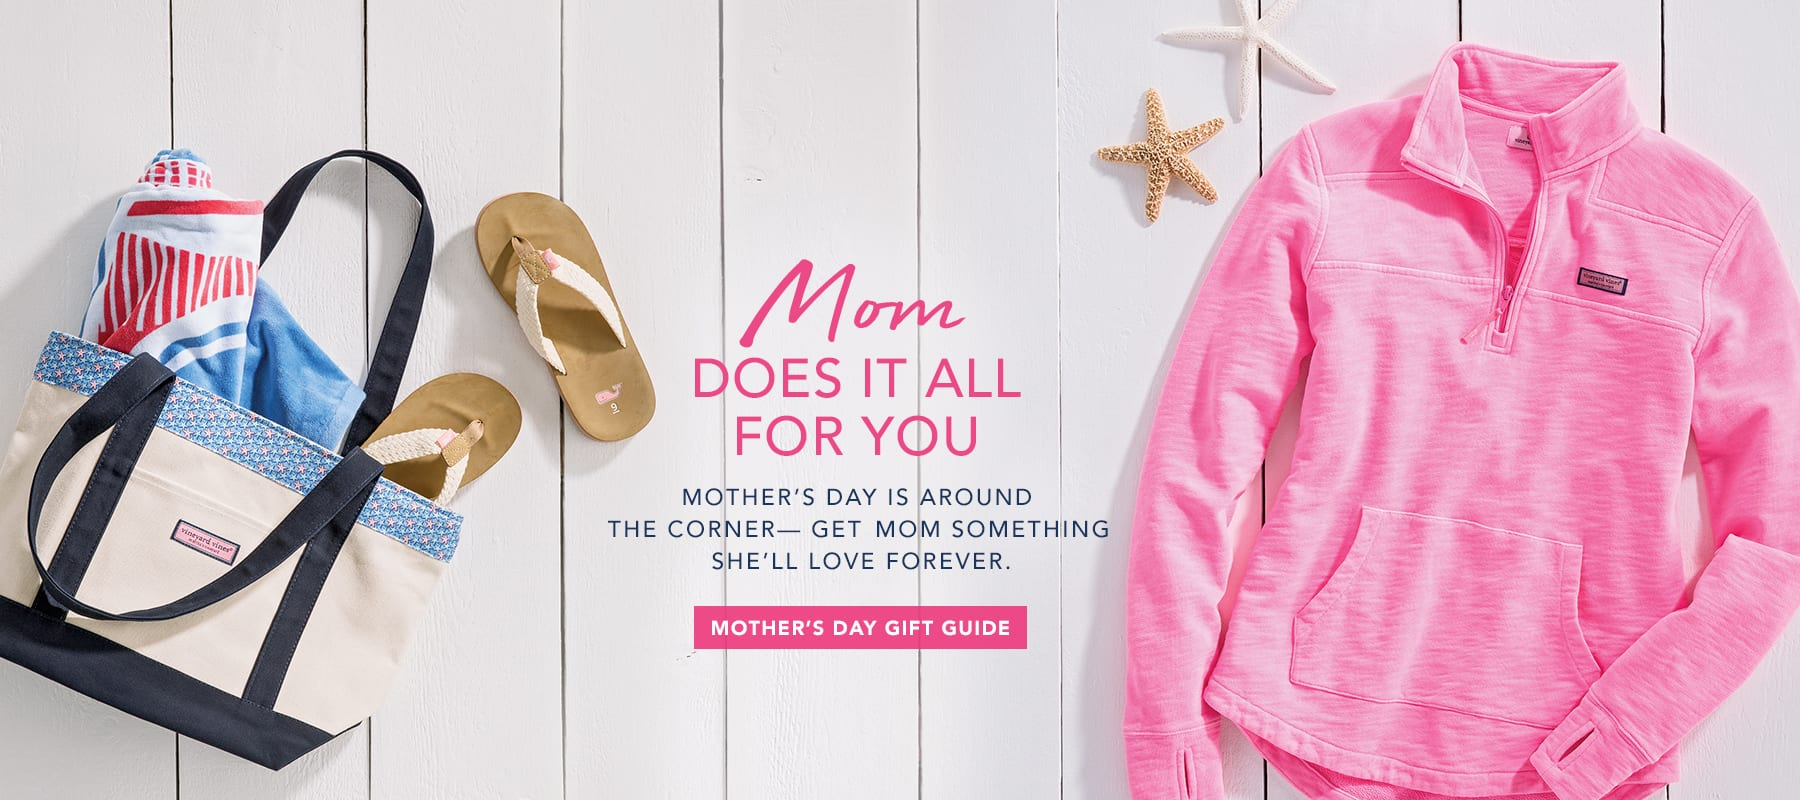 Mom does it all for you. Shop Mother's Day Gift Guide.